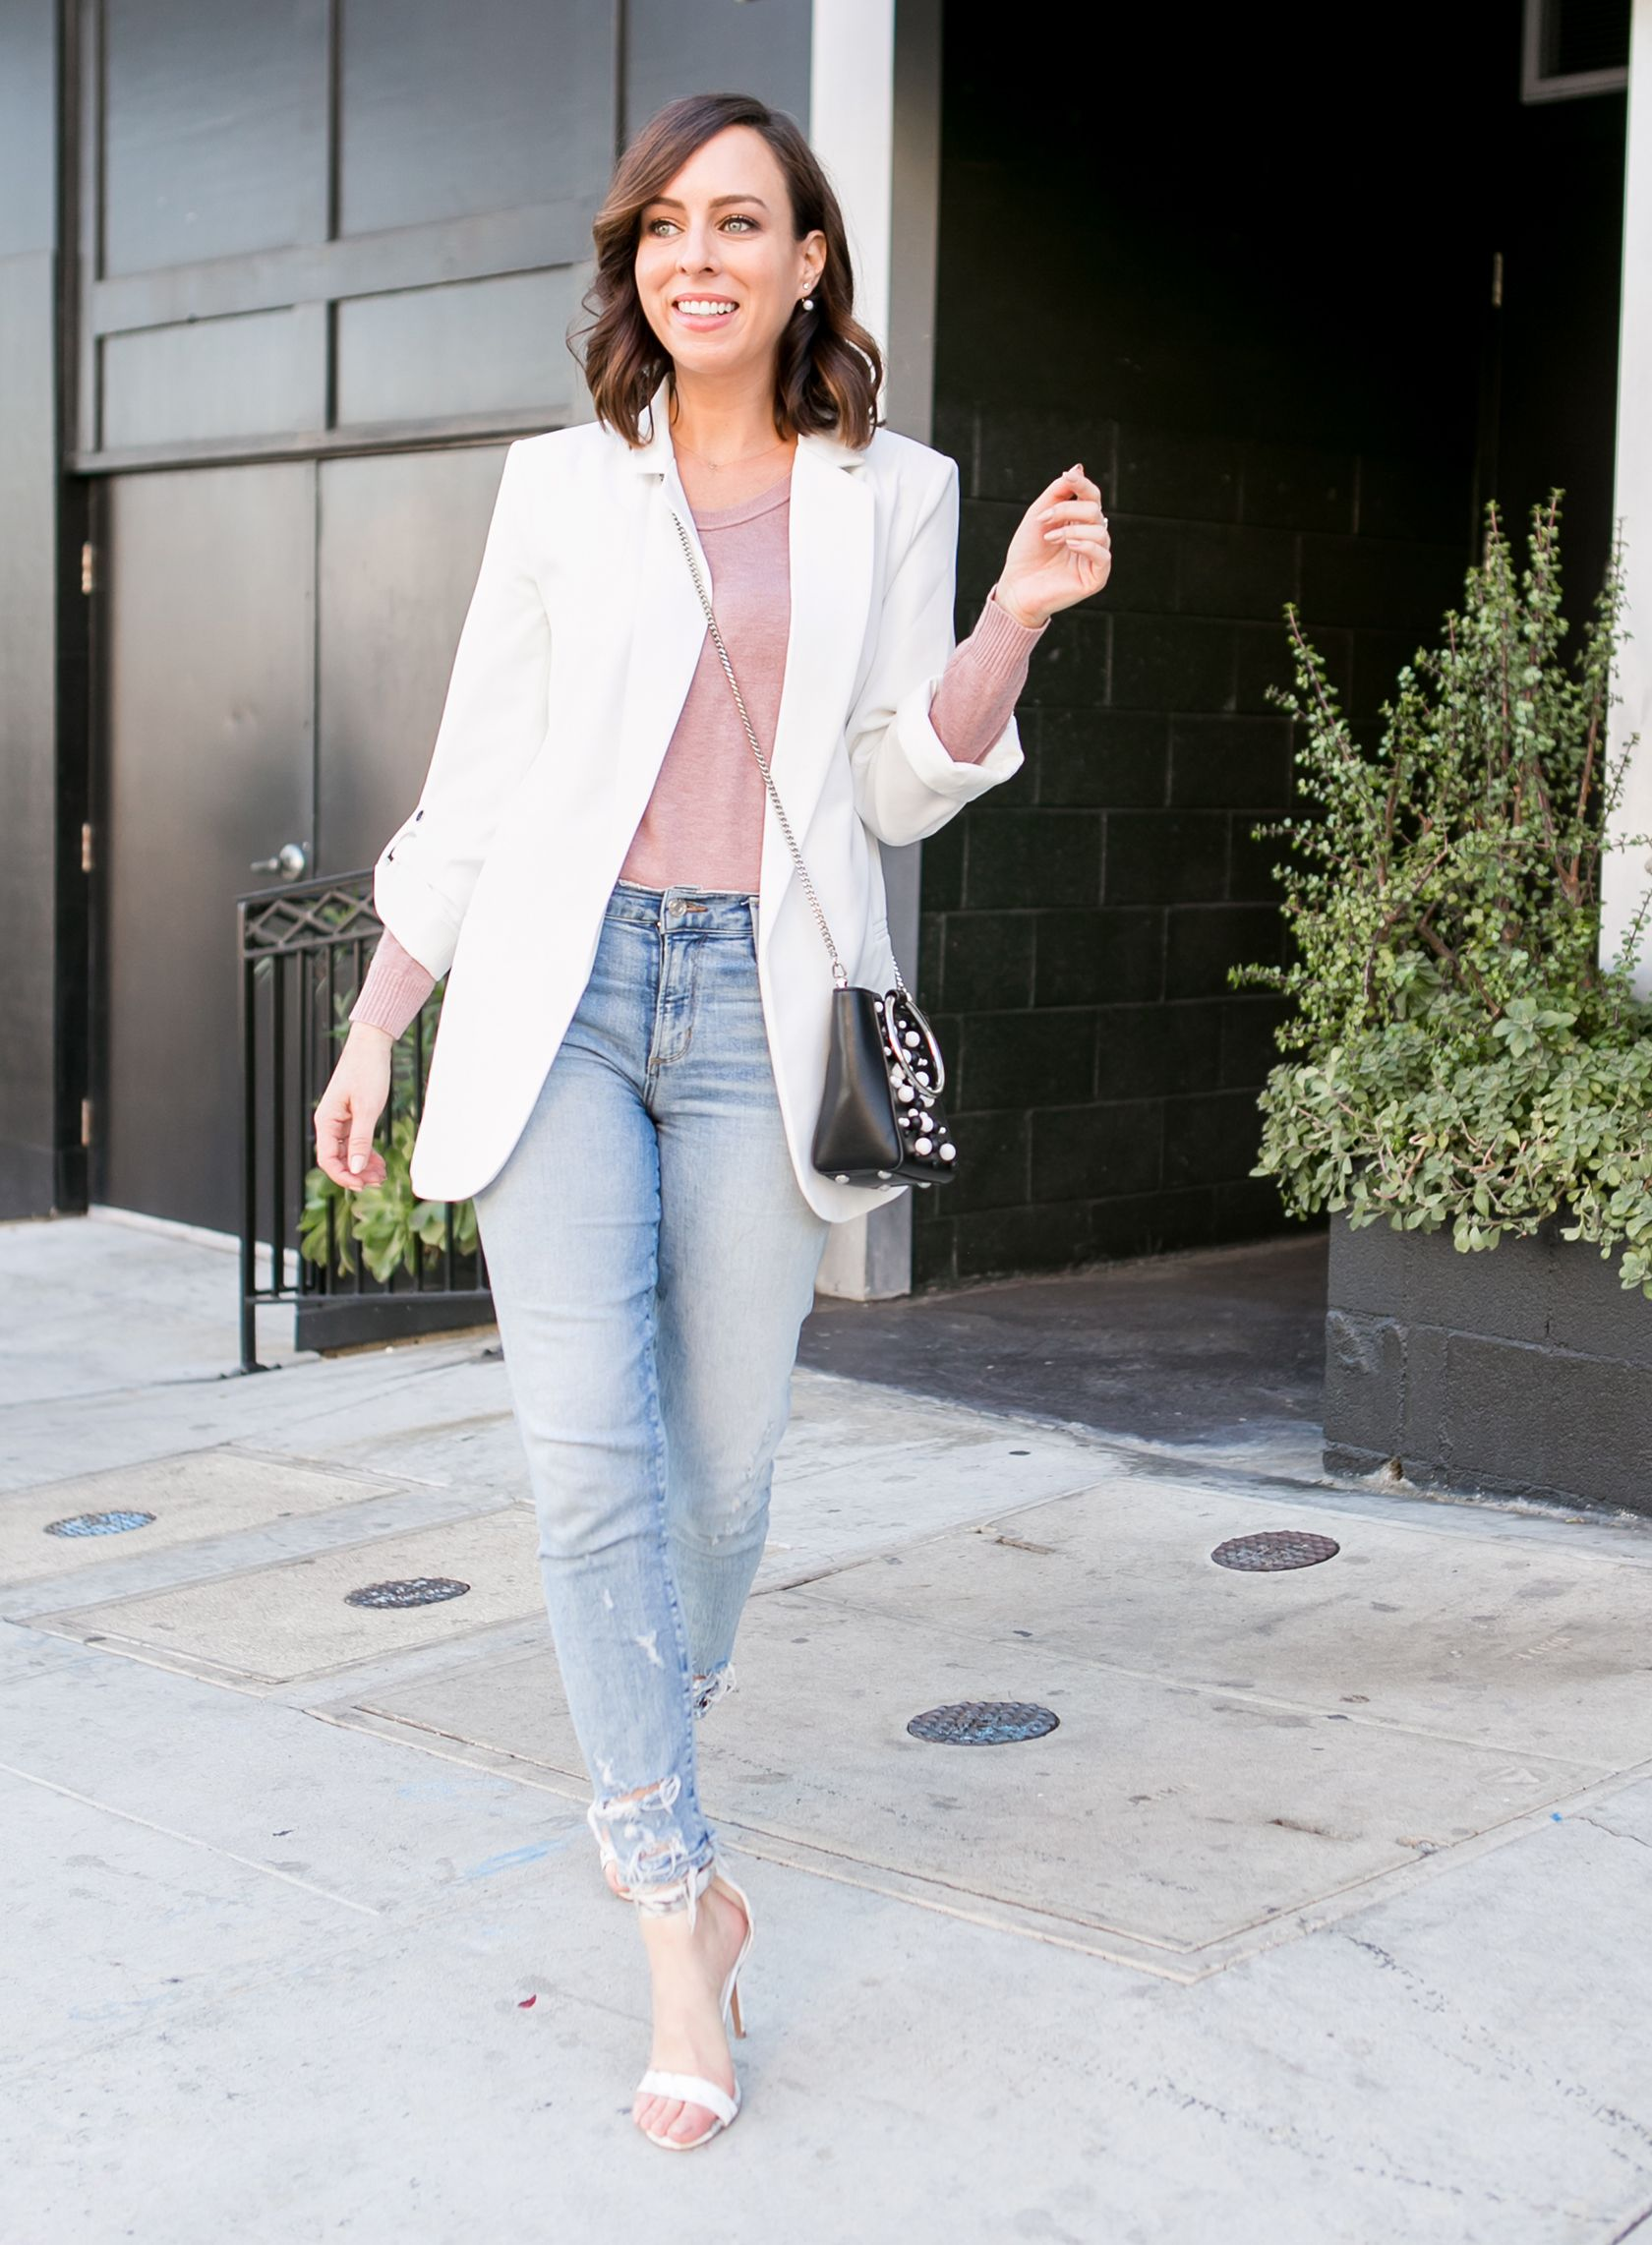 62915ee75164 Sydne Style gives casual outfit ideas in a white blazer and denim with  affordable shopping ideas. #casualstyle #casualoutfit #jeans #blazer #white  #blush